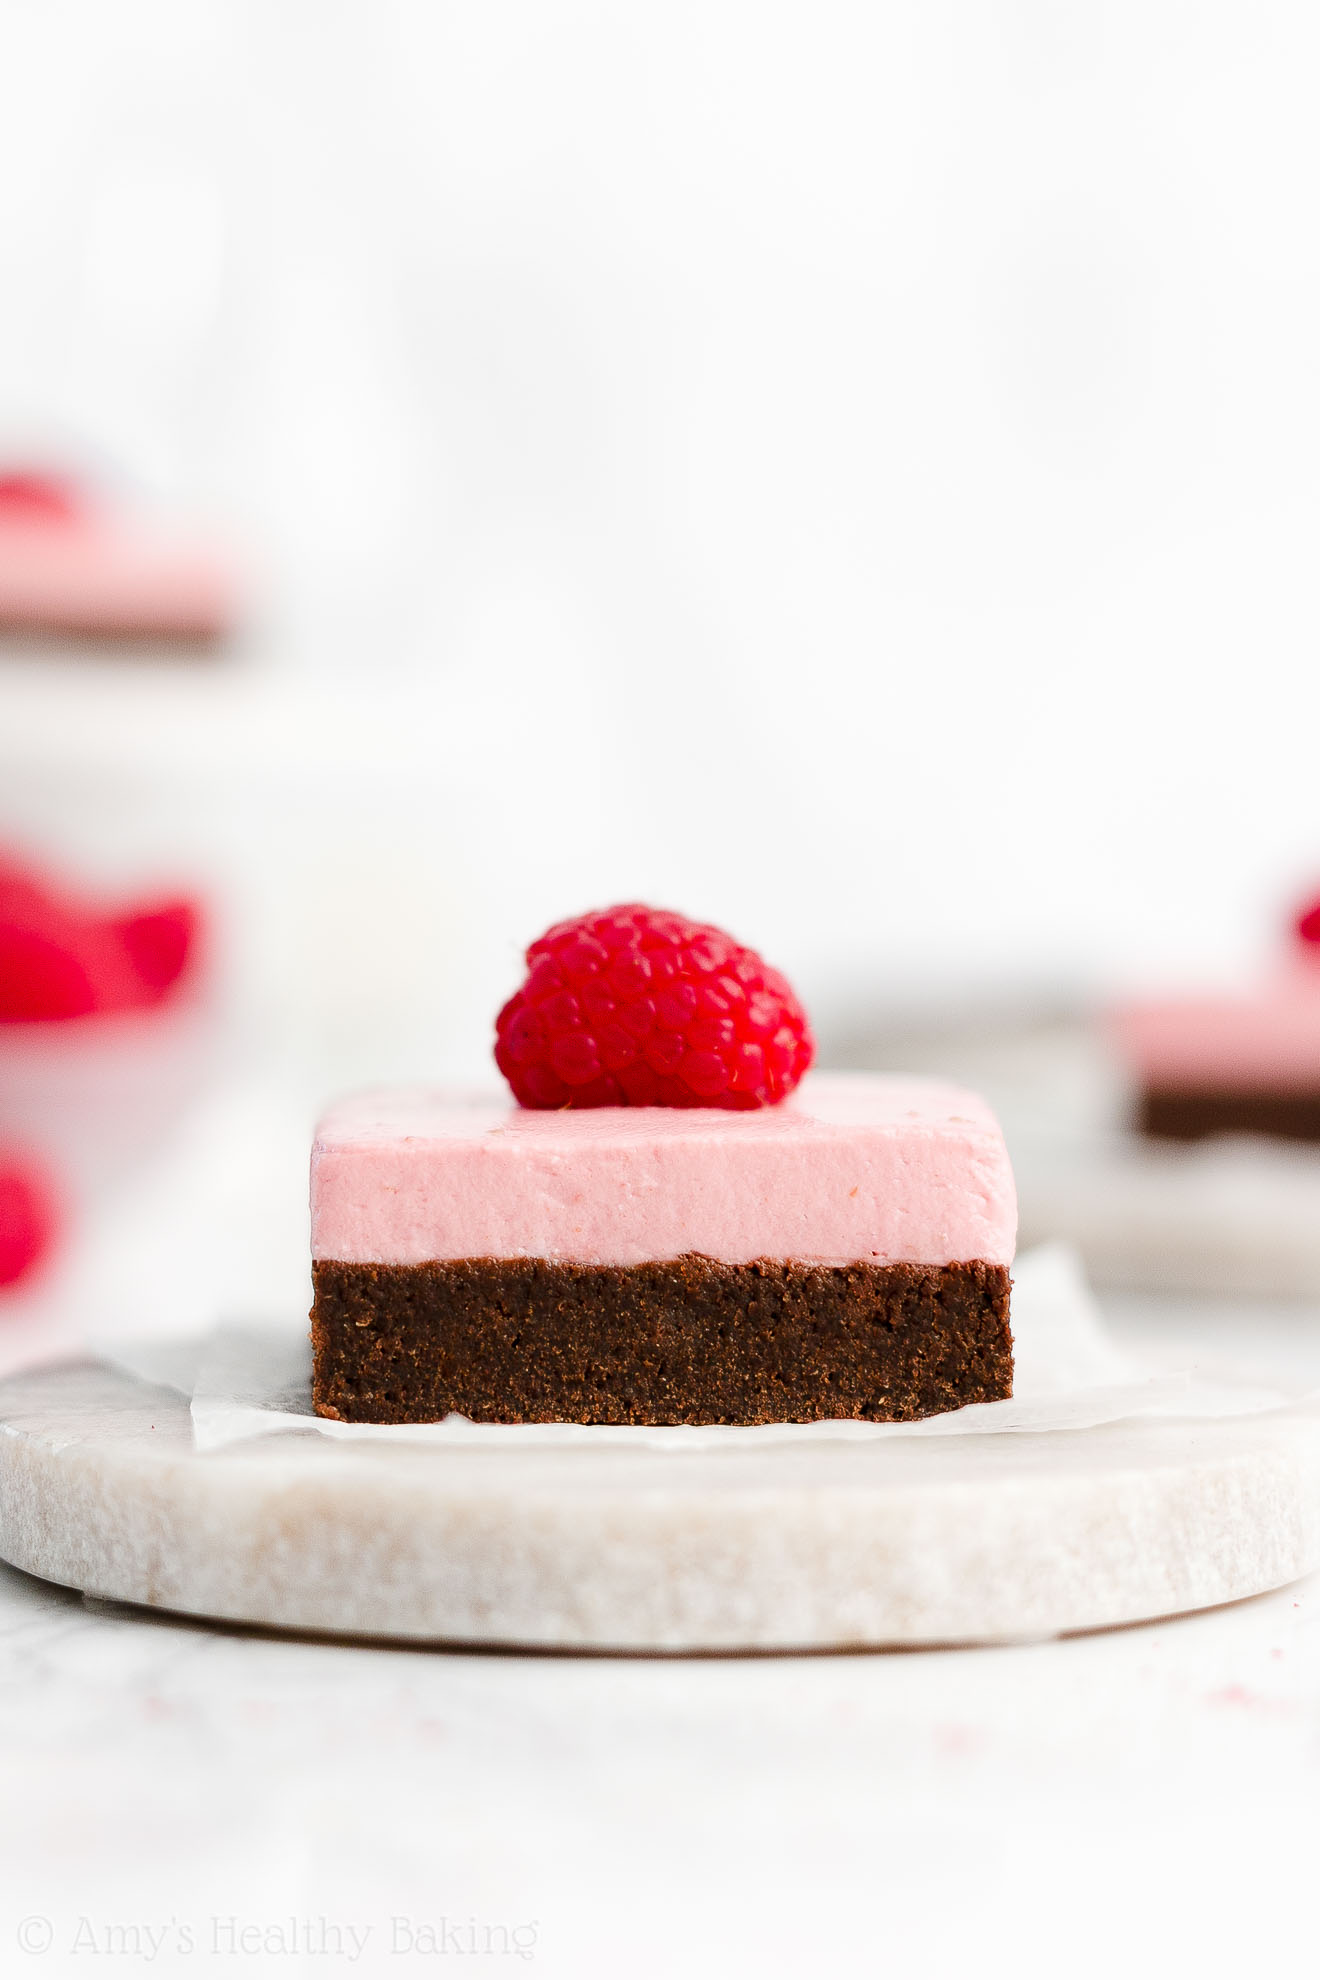 Easy Healthy Low Calorie Fudgy Dark Chocolate Brownies + Sugar Free Greek Yogurt Raspberry Frosting Without Butter